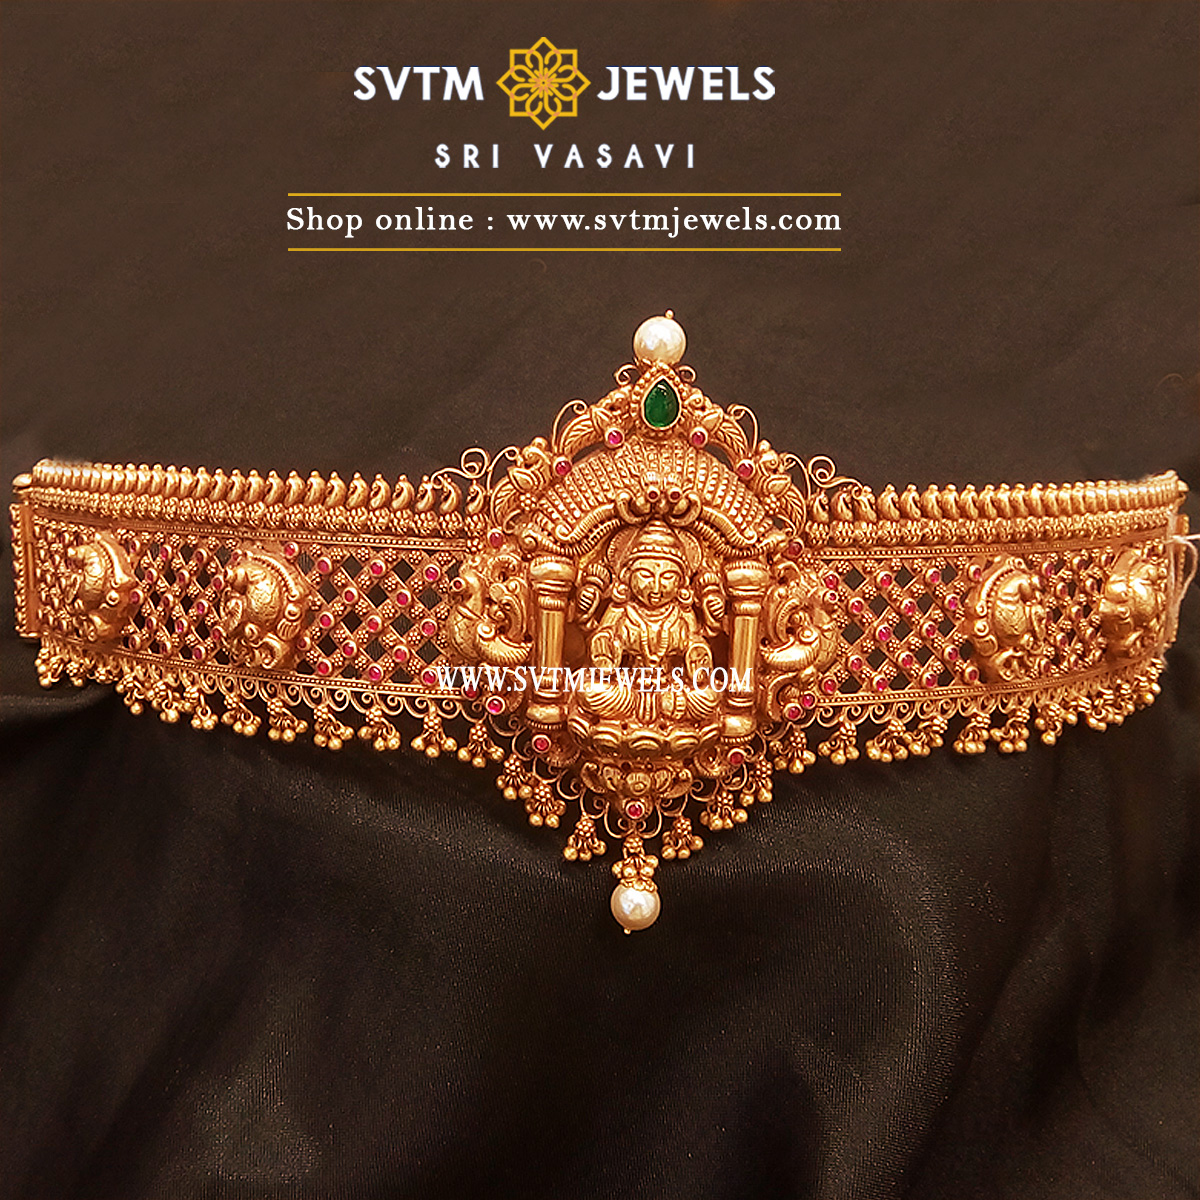 vaddanam-ottiyanam-hip-belt-designs (15)